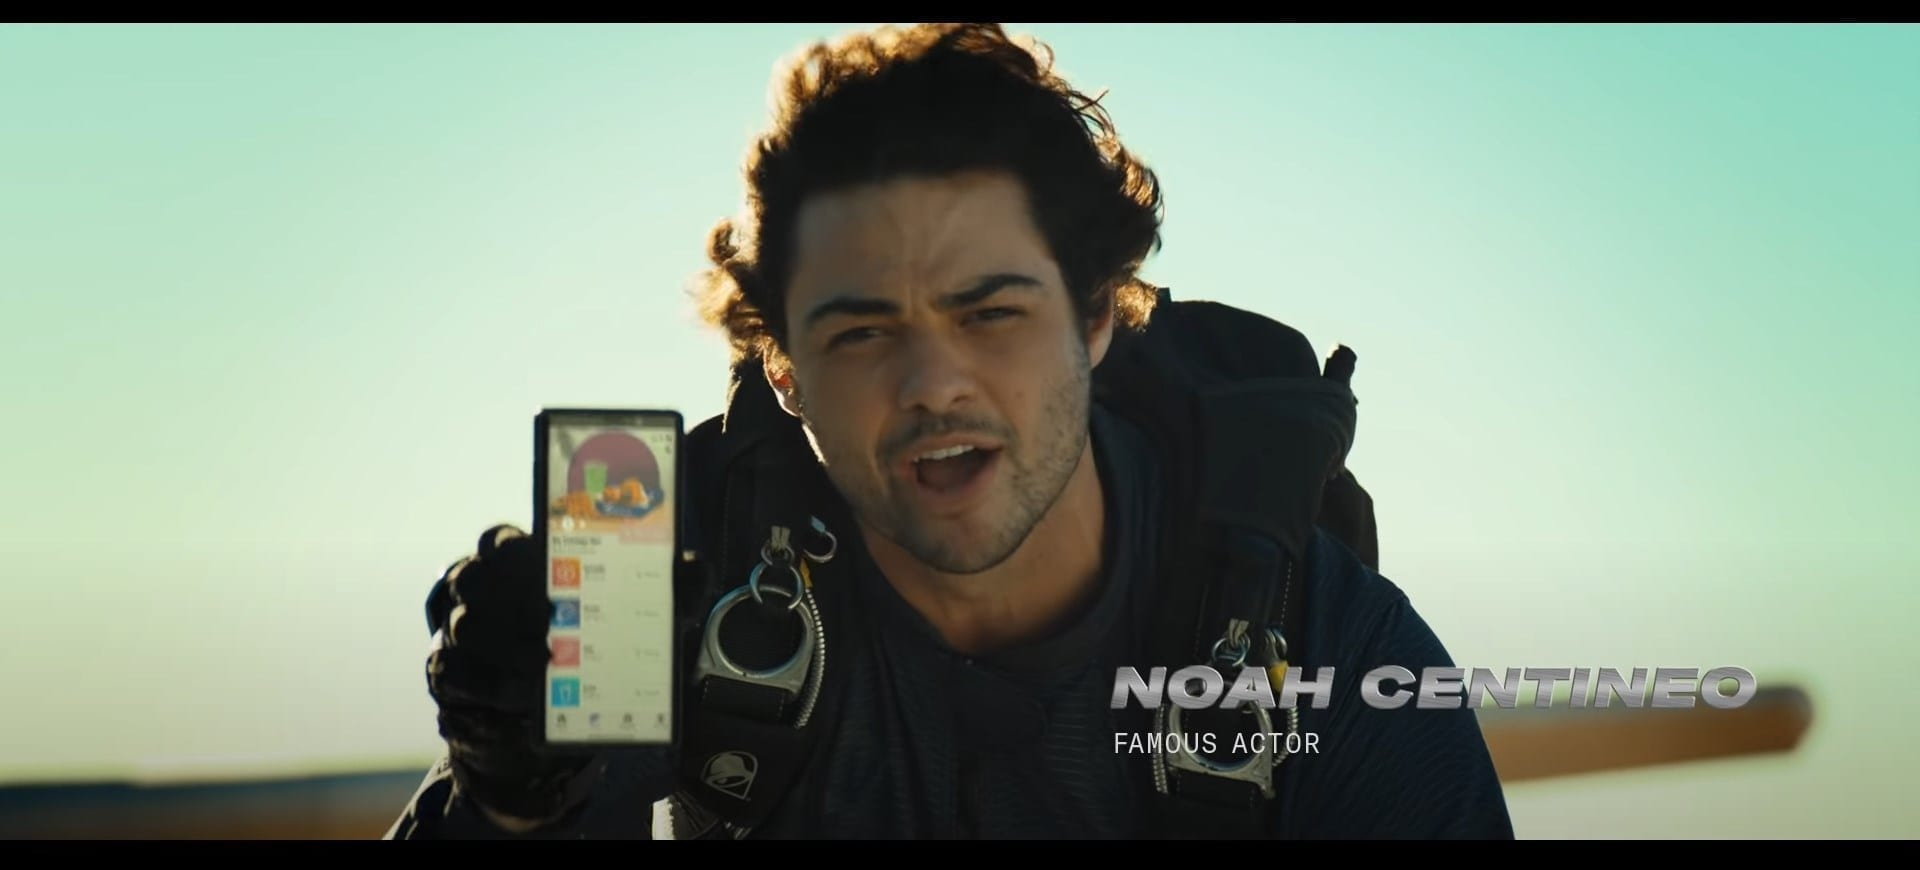 Taco Bell Noah Centineo commercial